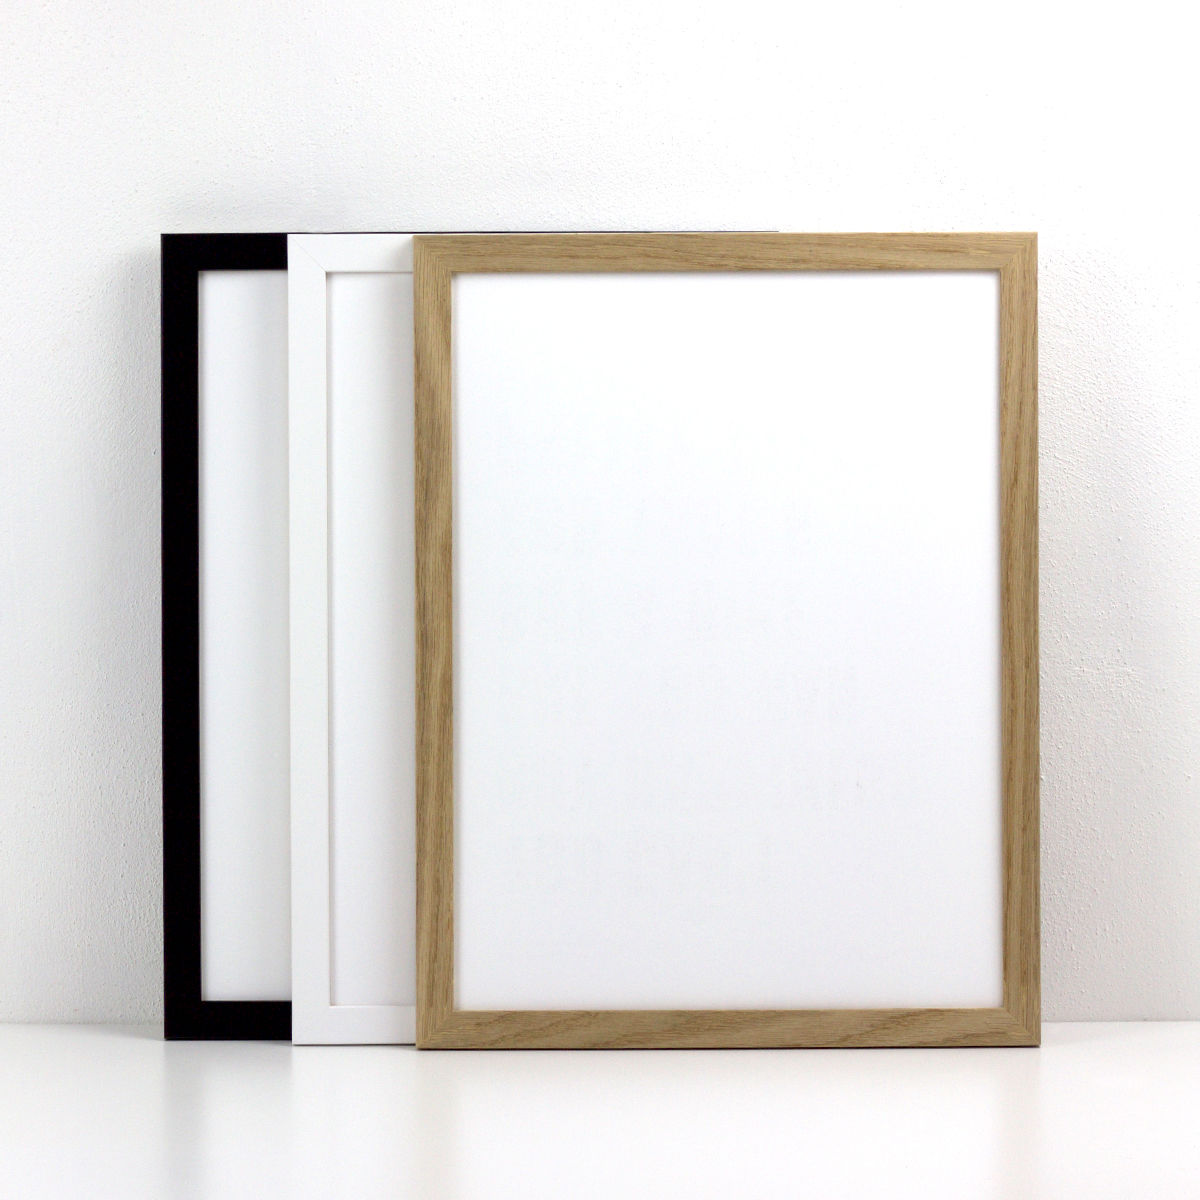 Wooden Frame 30cm x 40 cm - product images  of